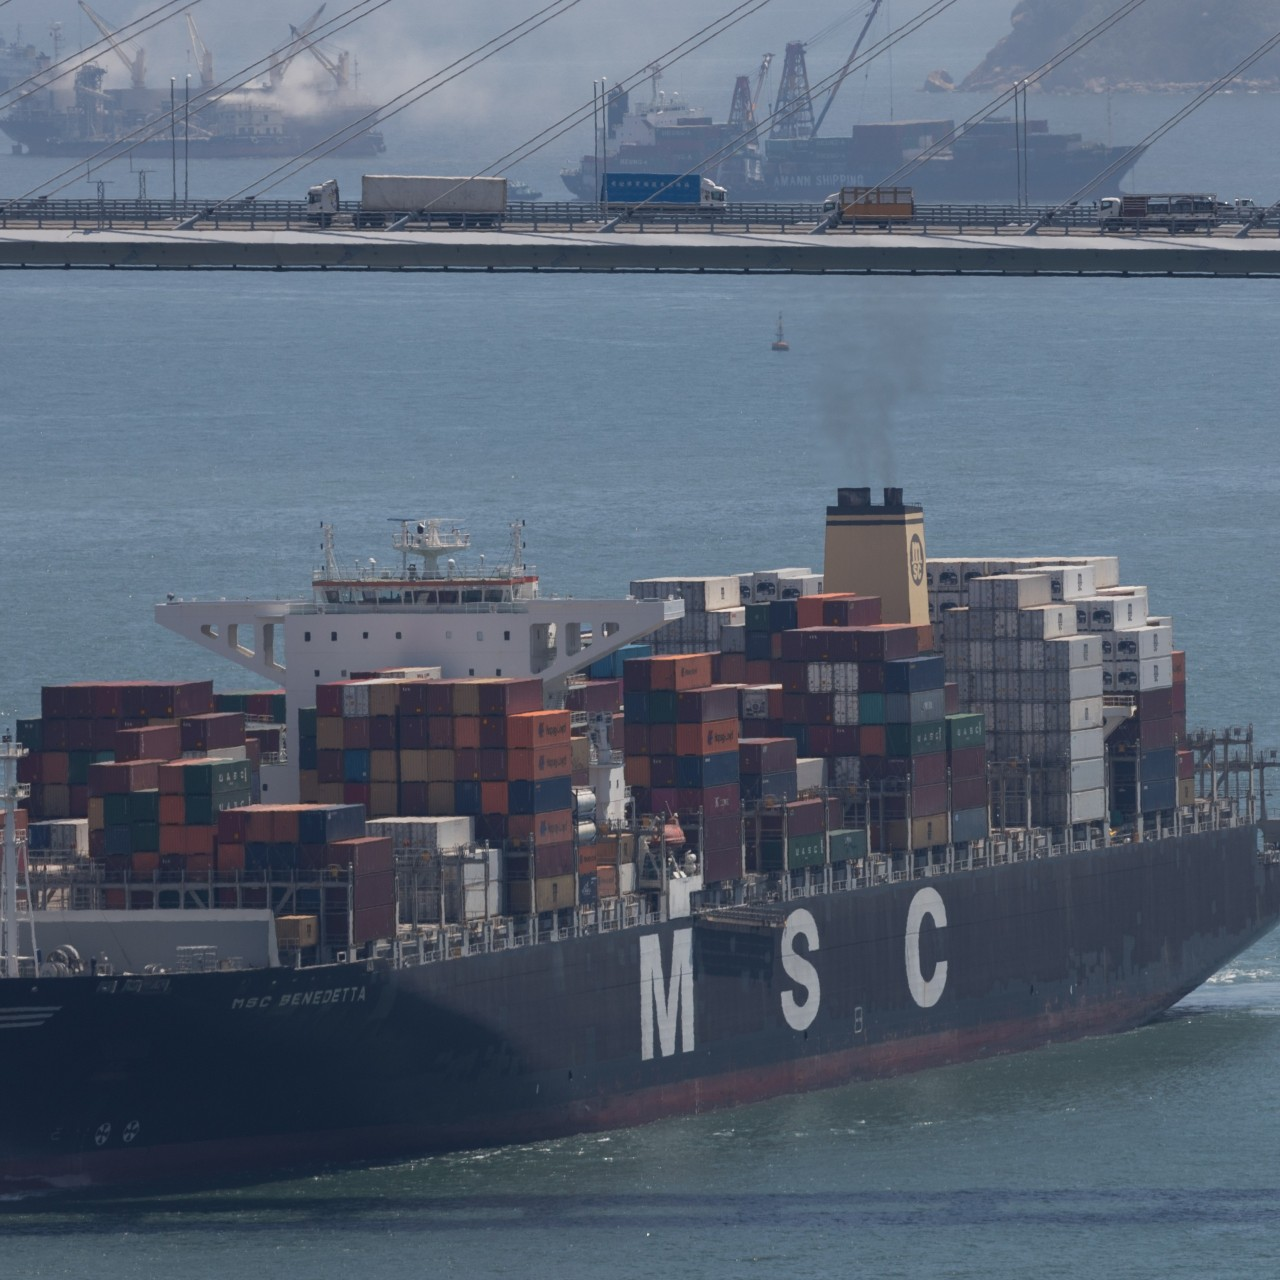 Honouring the biggest ship ever built, and Hong Kong's role in